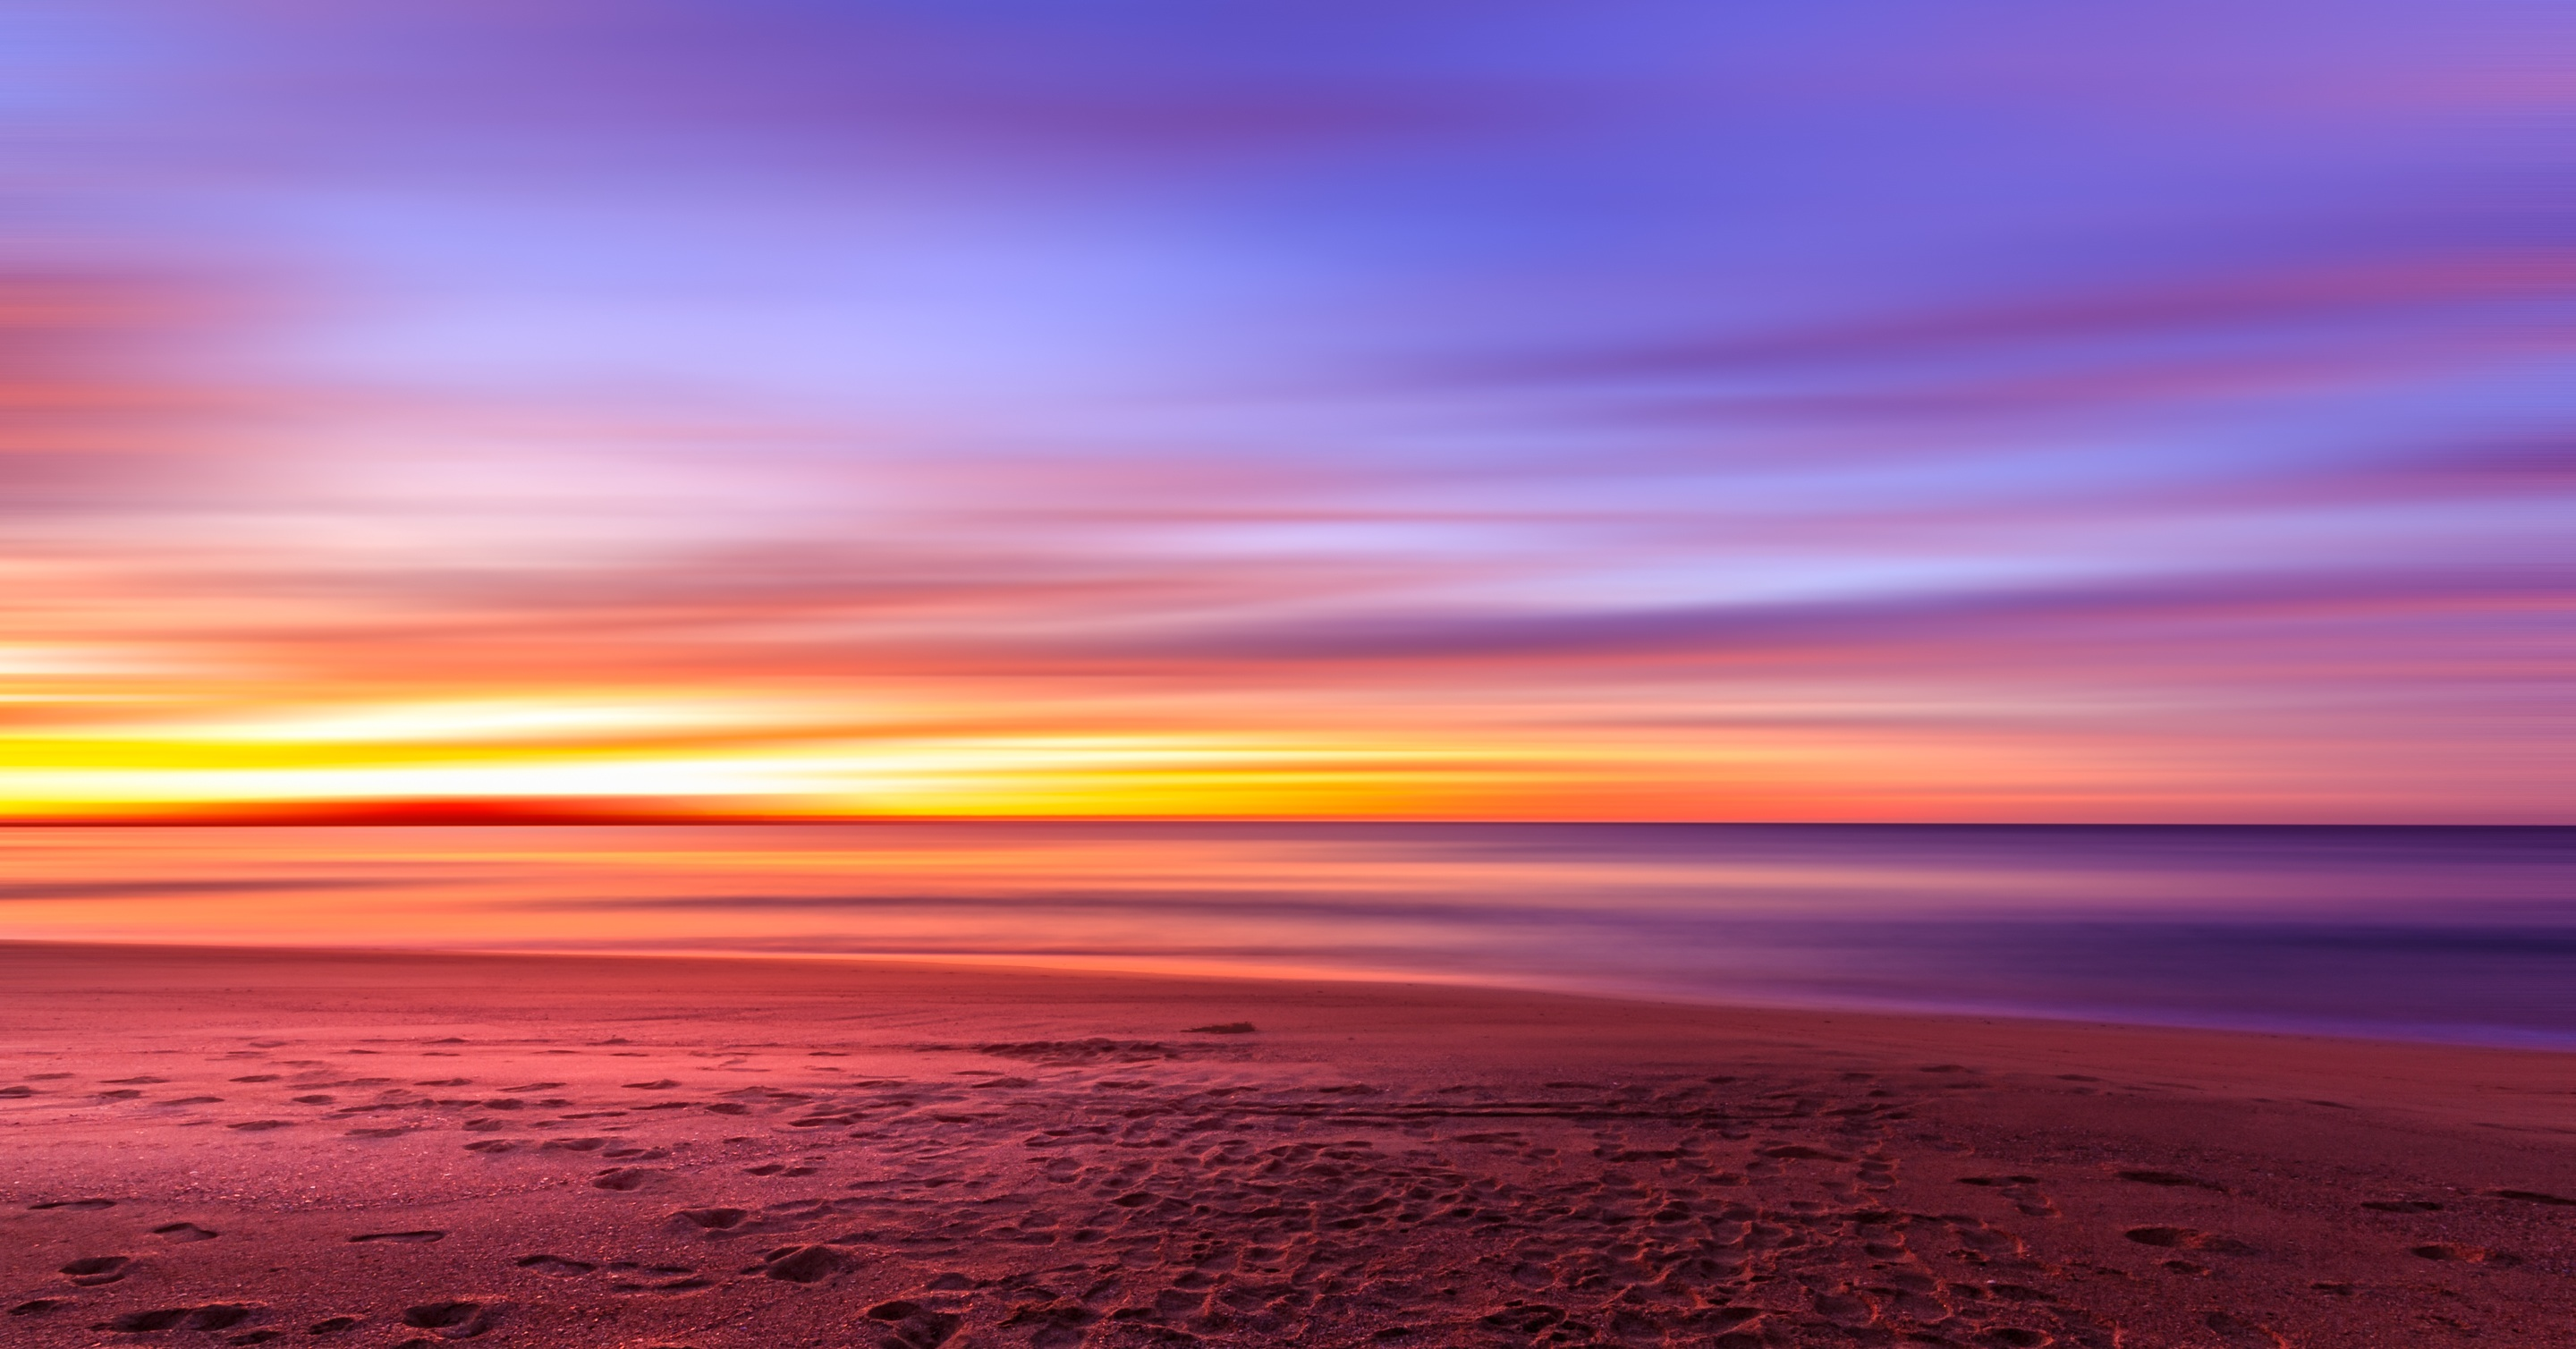 Beautiful Landscape Sunset And Dusk On The Beach At Sydney New